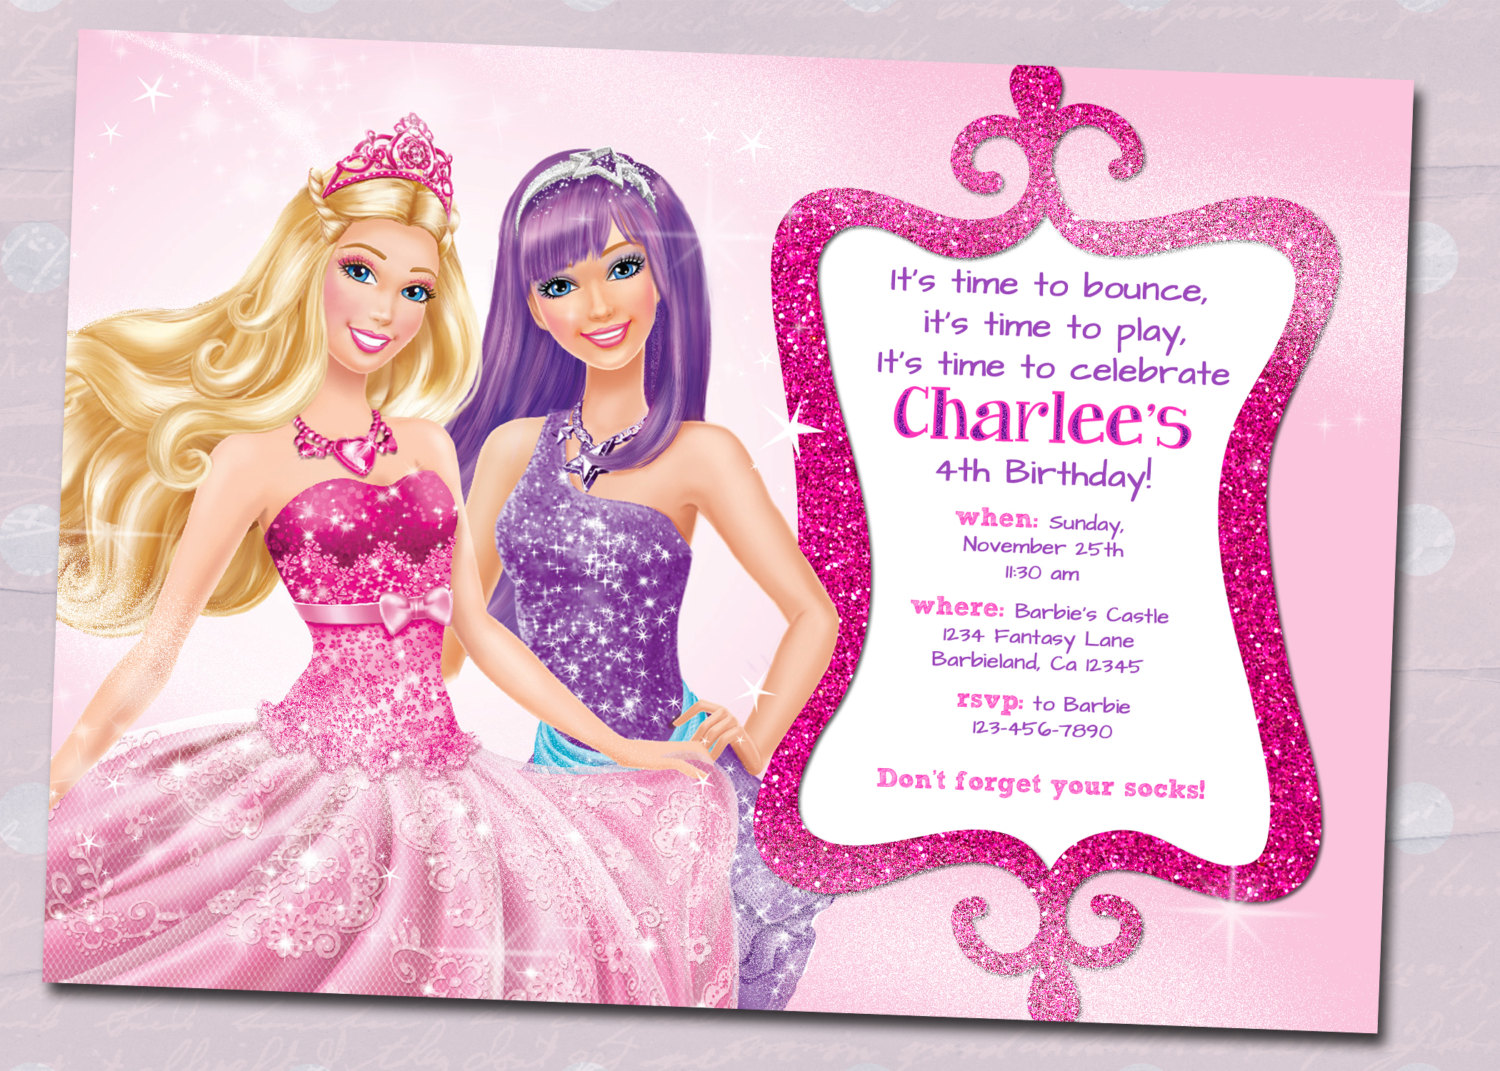 birthday invitation barbie theme ; barbie-birthday-invitations-with-nice-looking-appearance-for-nice-looking-Birthday-invitation-design-ideas-2